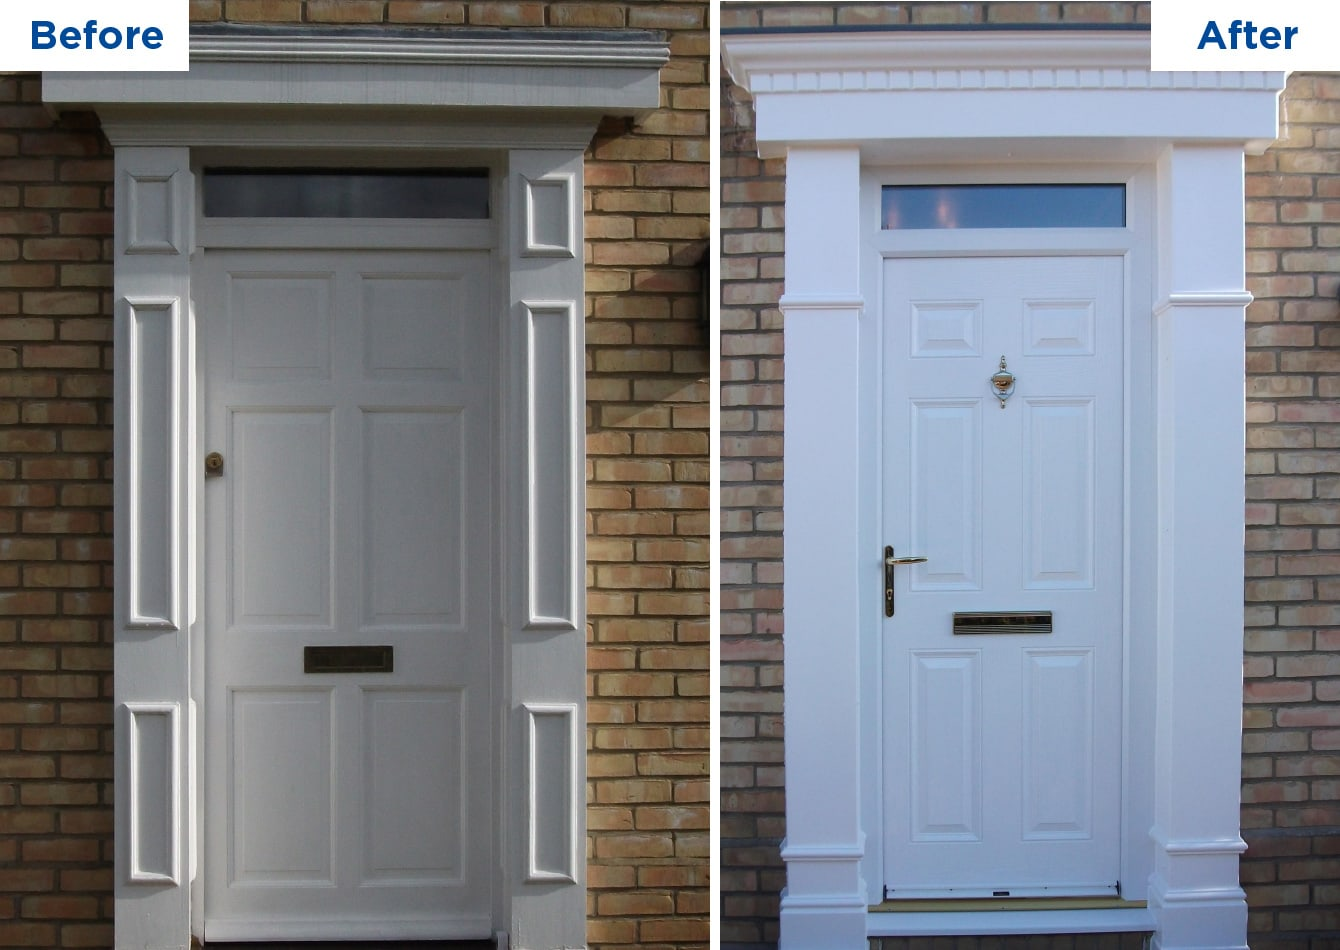 A before and after example of door surrounds